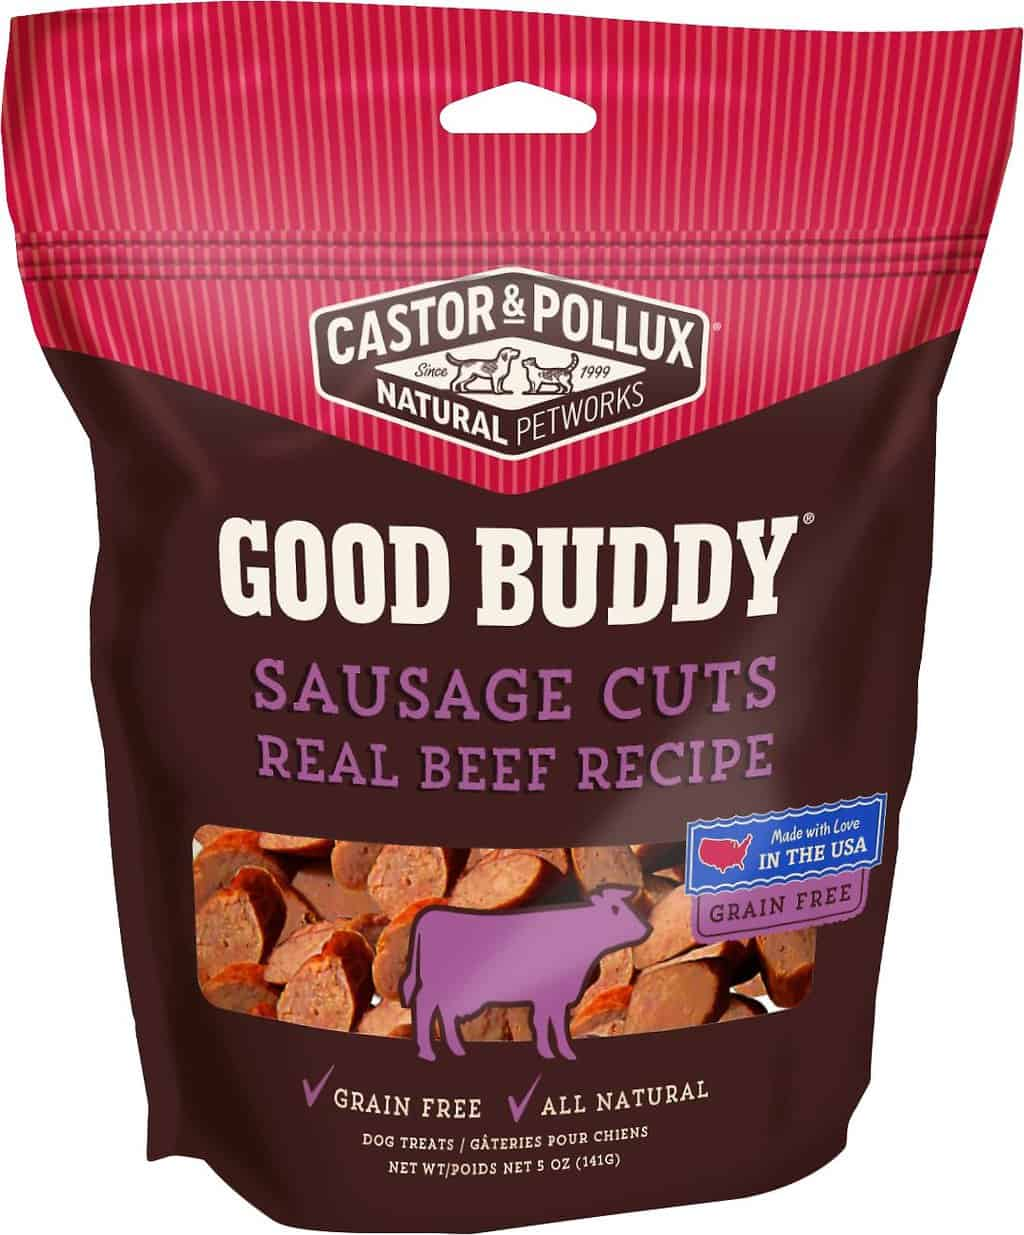 Castor and Pollux Dog Food: 2021 Review, Recalls & Coupons 23